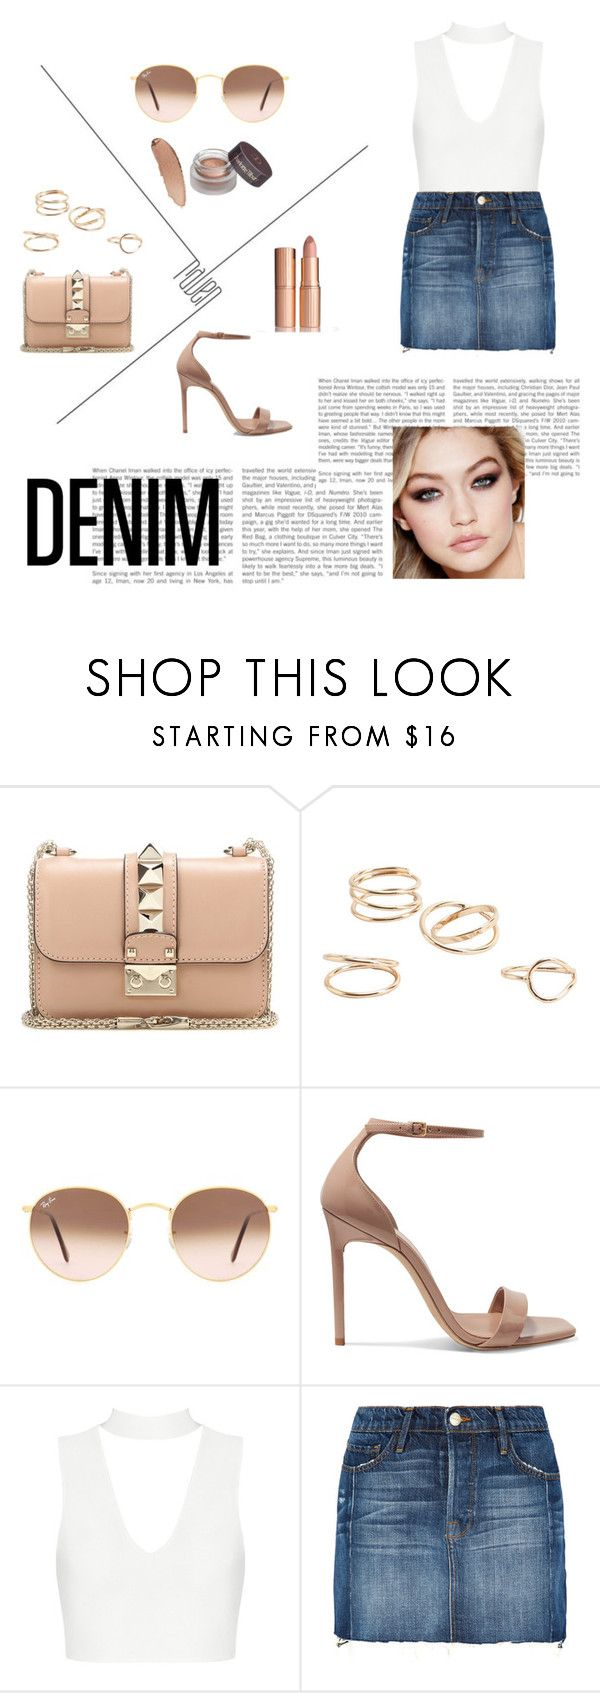 """I love denim!"" by zeynepalioglu ❤ liked on Polyvore featuring Valentino, MANGO, Ray-Ban, Yves Saint Laurent, Frame and Maybelline"